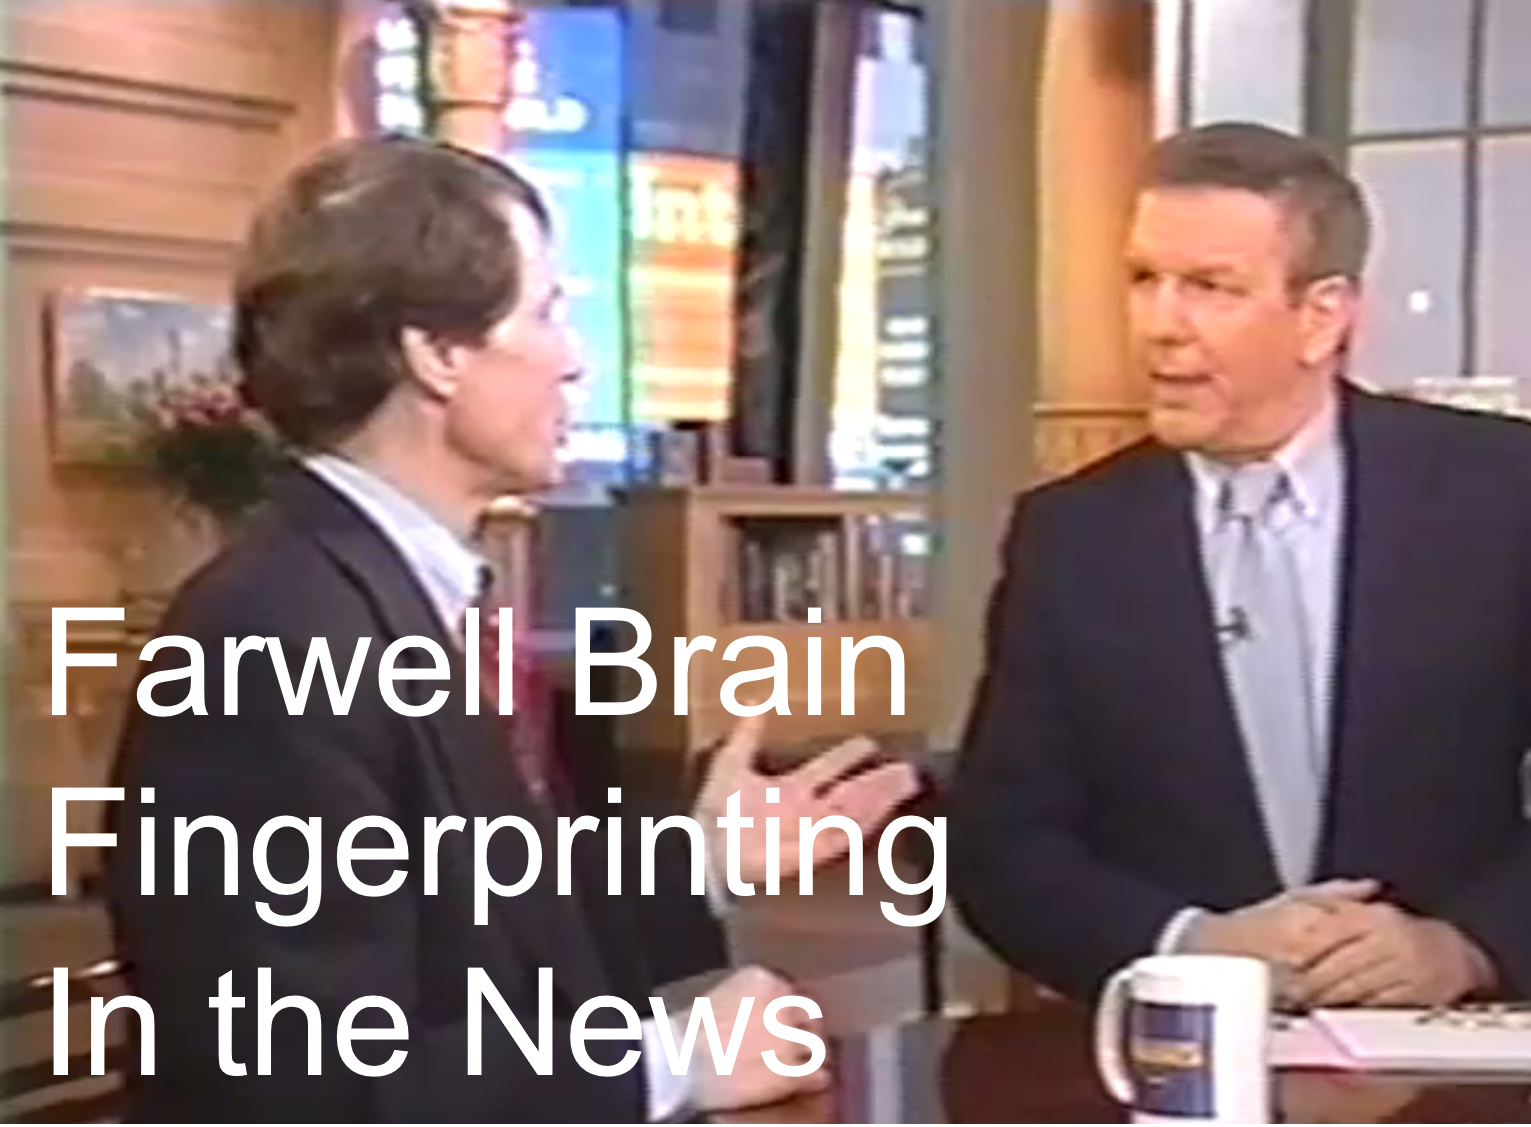 Farwell on Good Morning America - In the News